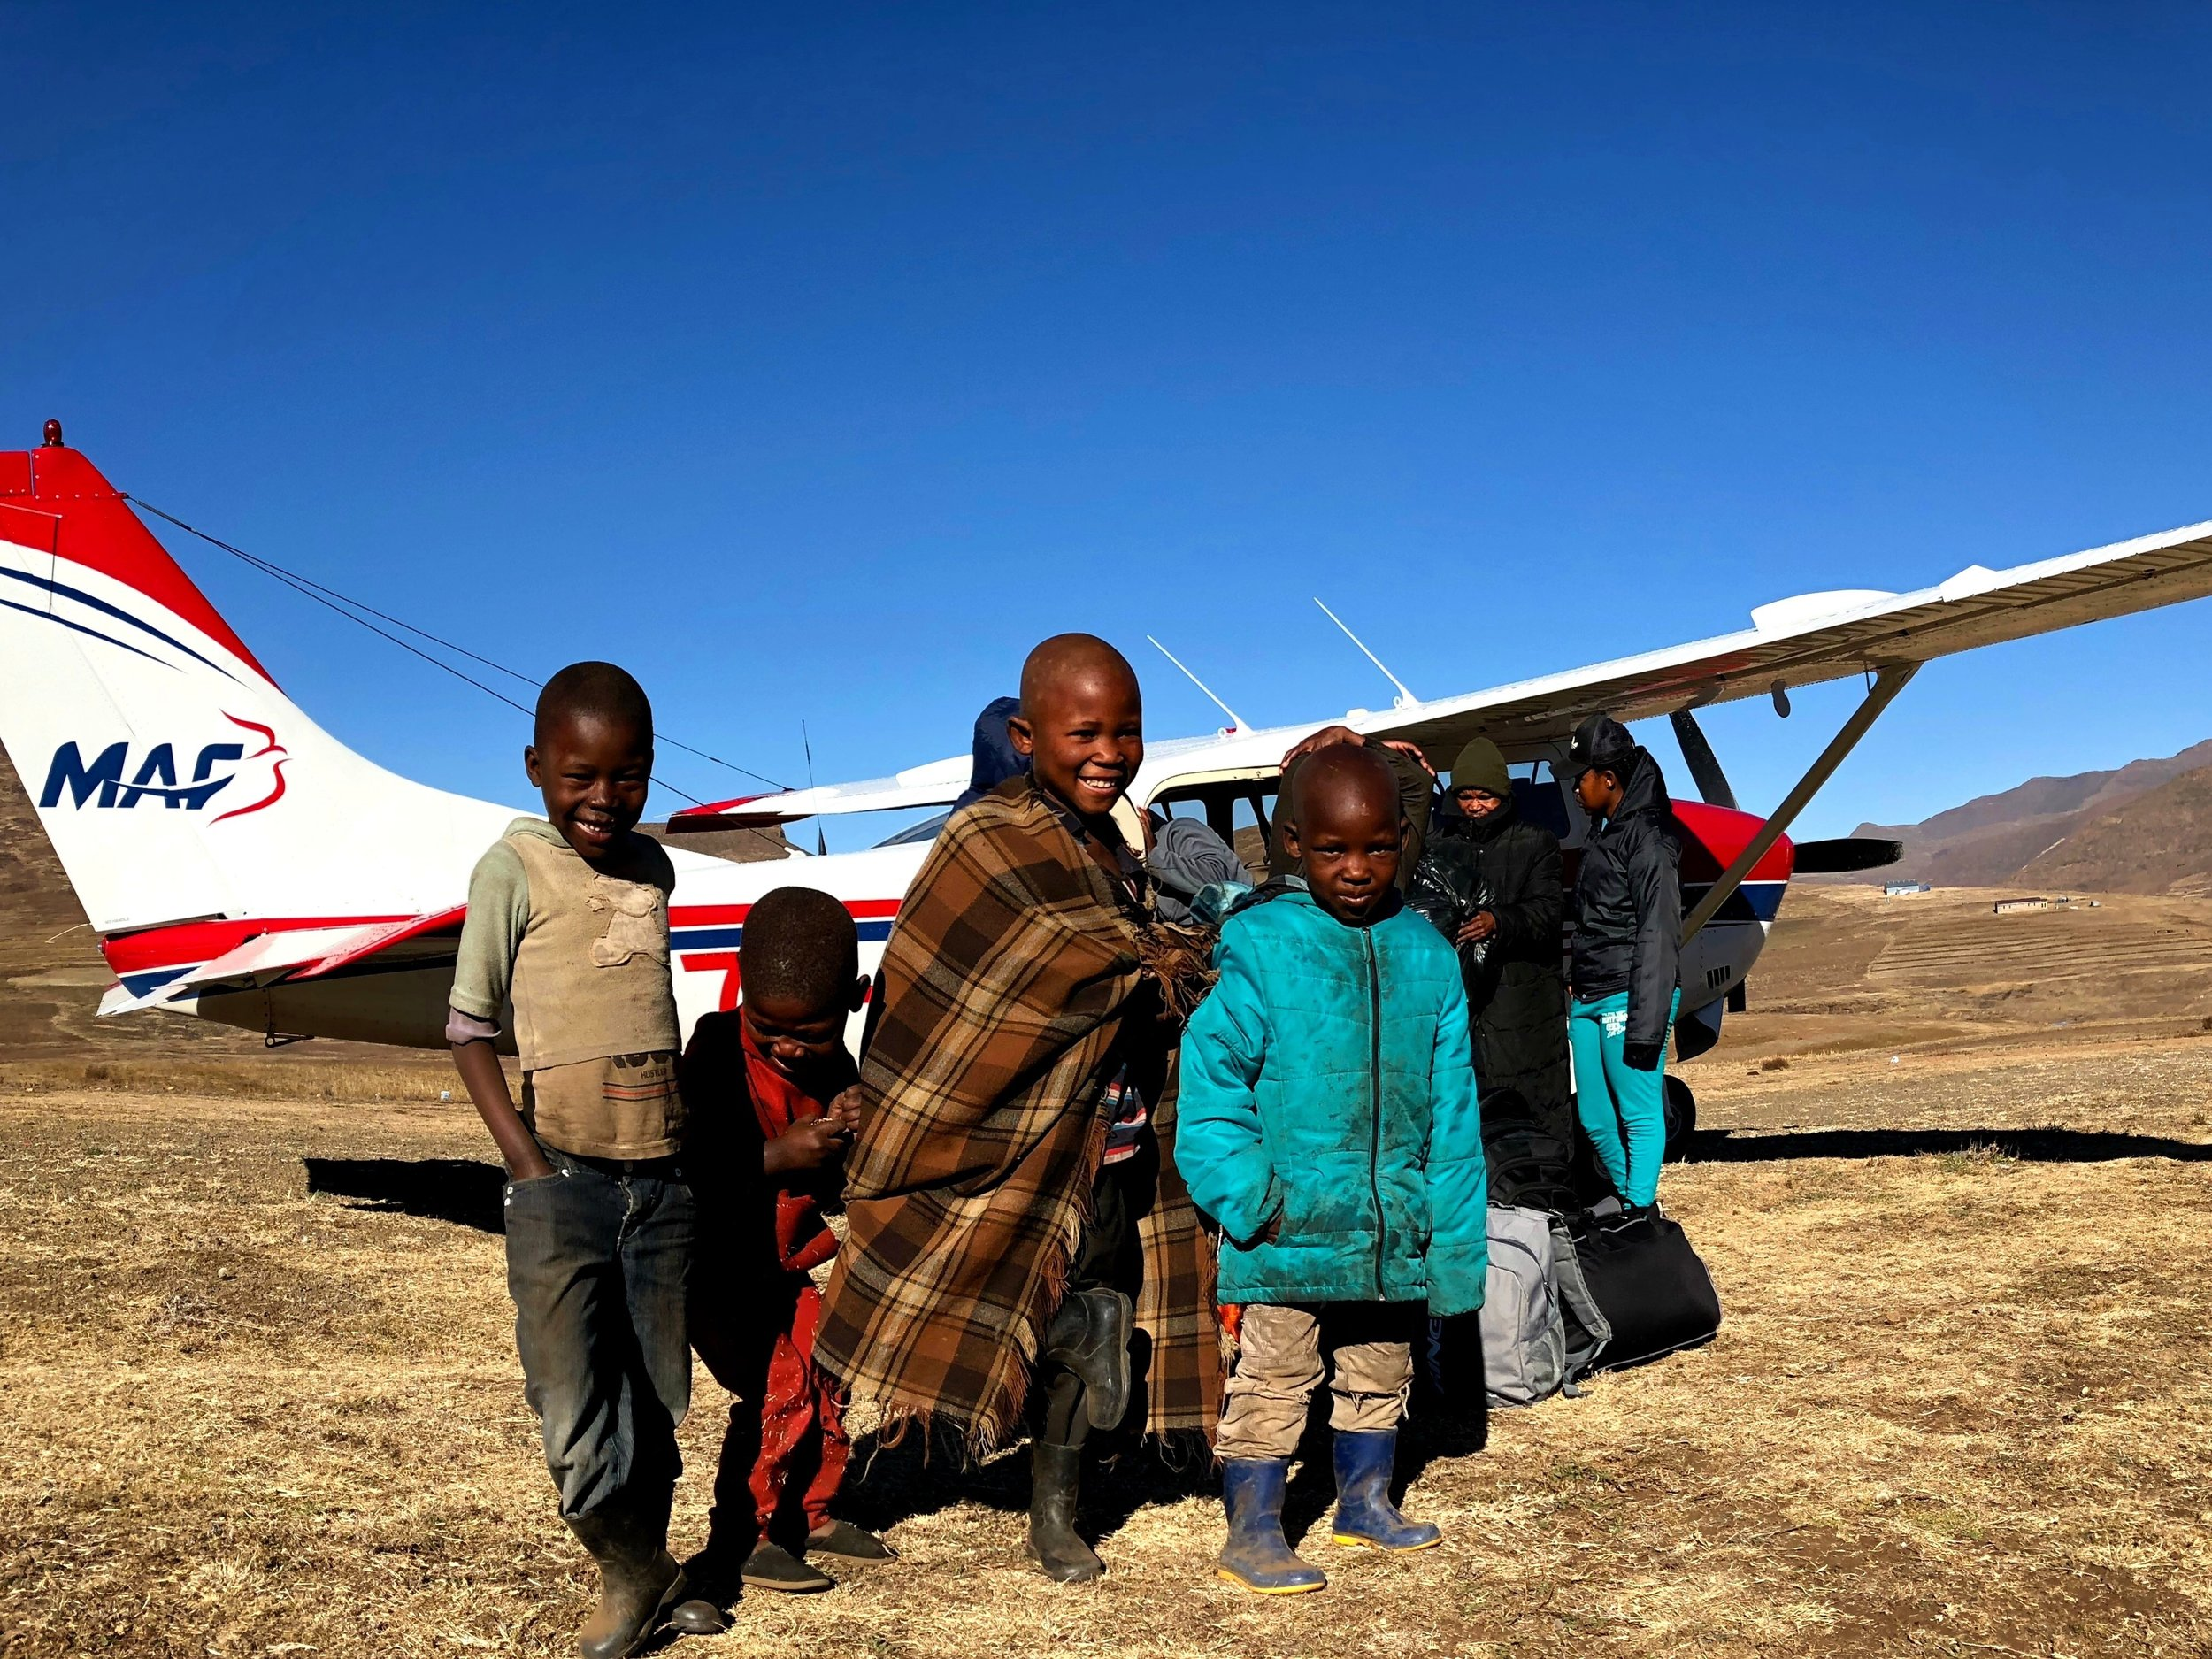 People are always excited to see the planes arrive to their village. One place in particular, I always notice a group of kids standing in the same spot when I taxi past for take-off. They are always waving and smiling. On one flight in June I stopped the plane near their hut (the huts are about 10 meters away from the runway) to offload. They were very excited to get closer and see what the plane looked like inside!